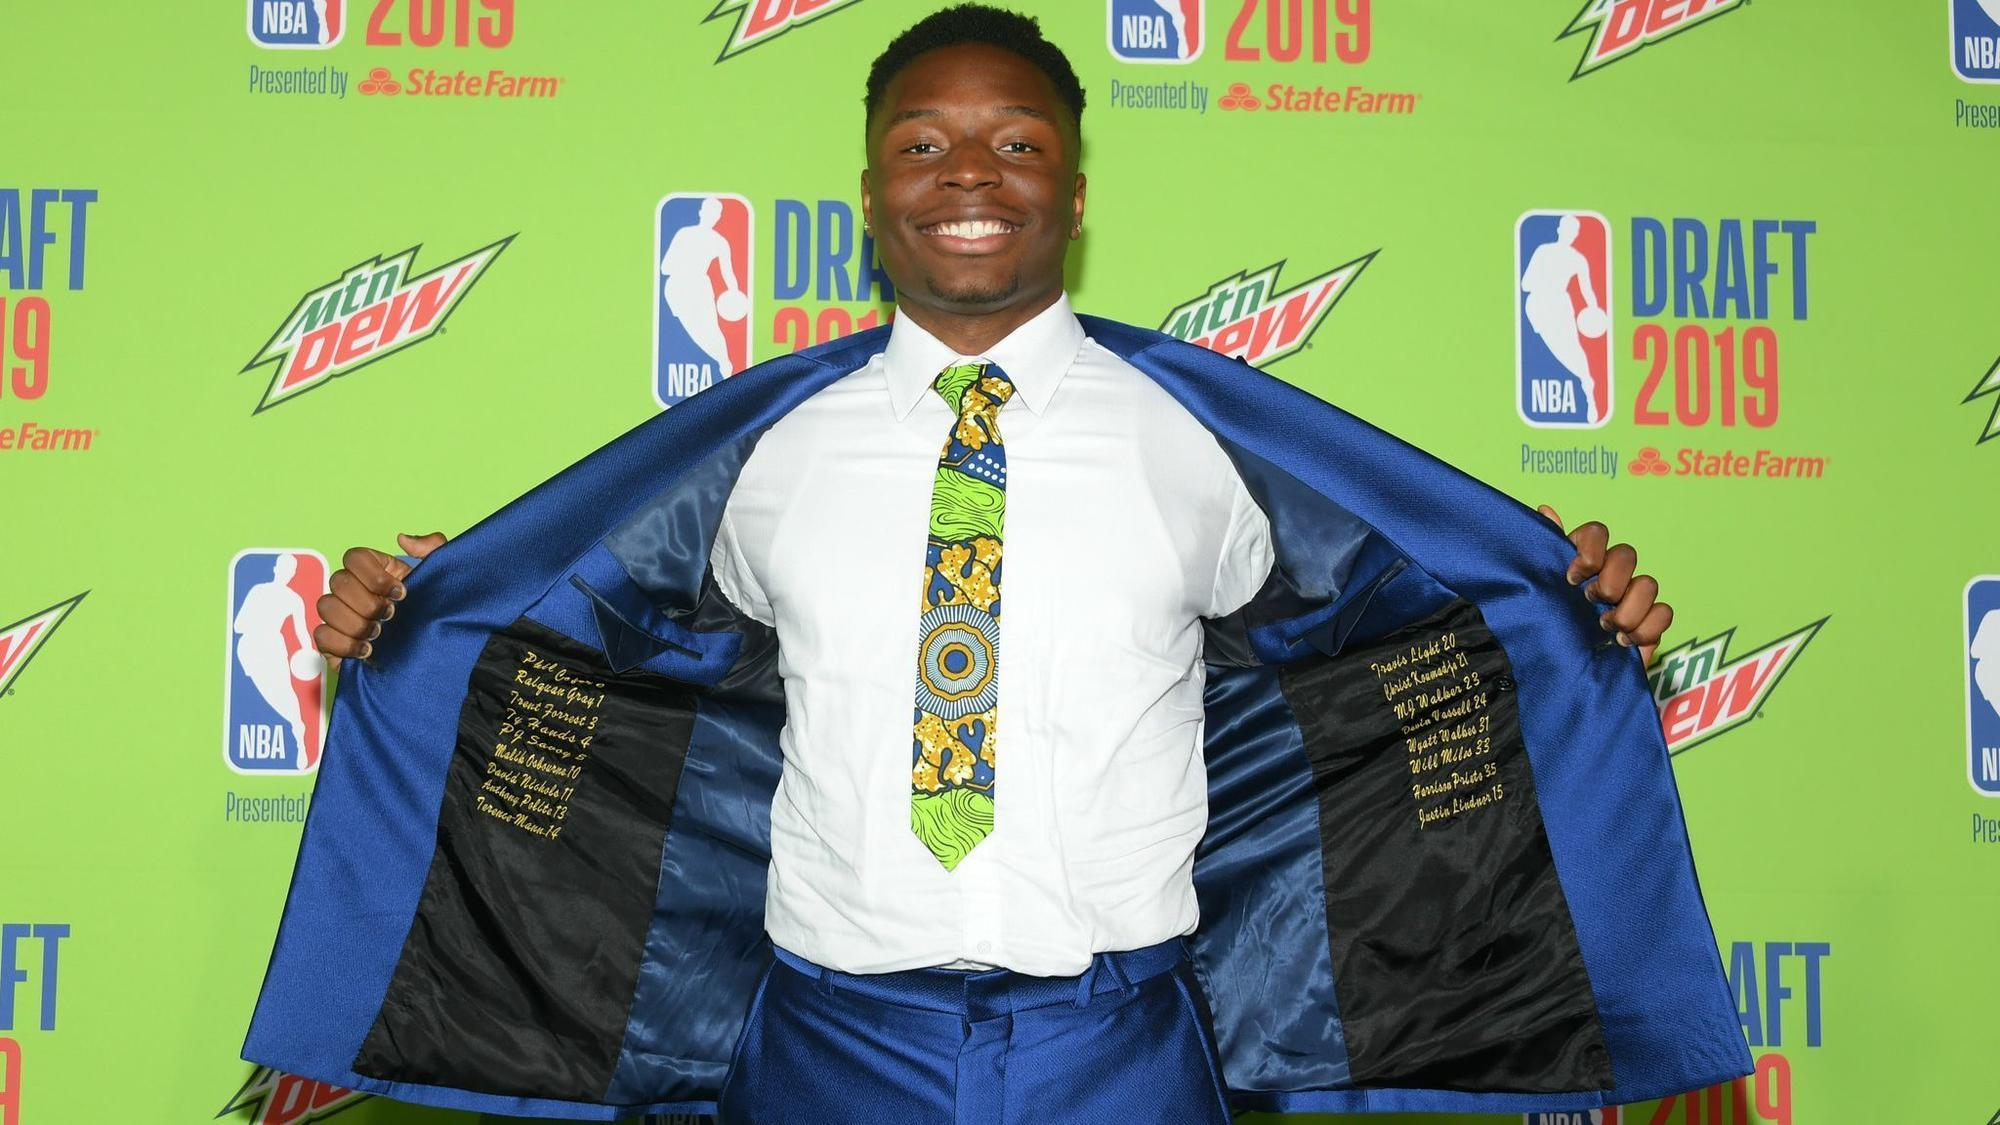 Mfiondu Kabengele and fellow Clippers rookies get ready for summer league